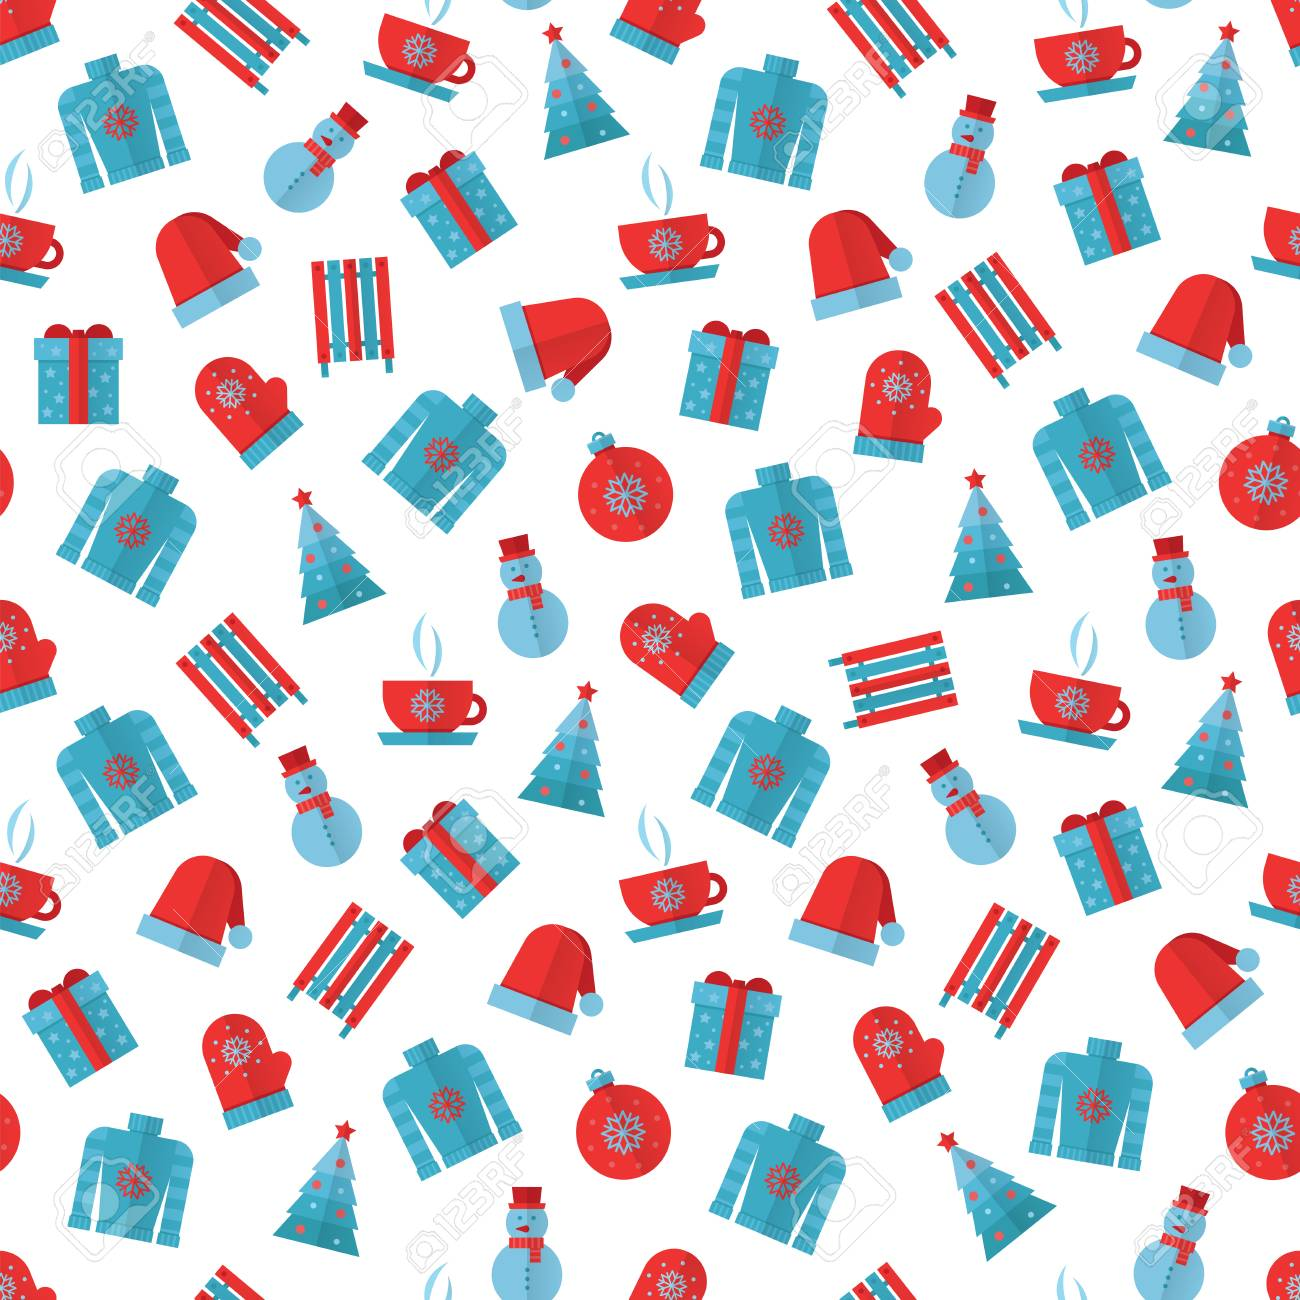 Colors Christmas.Winter Seamless Pattern Blue And Red Colors Christmas Seamless